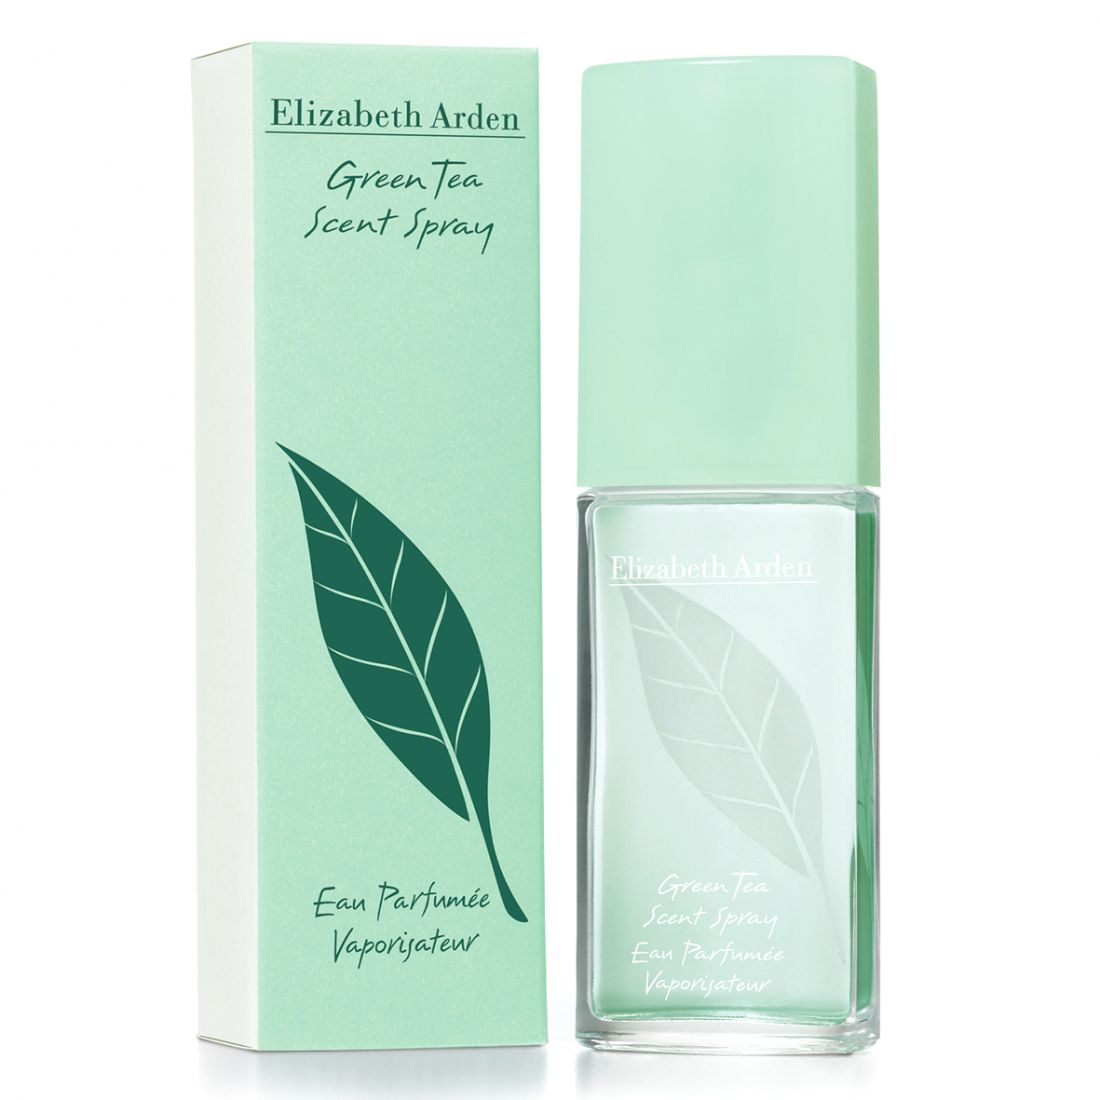 Elizabeth Arden - Green Tea, 50 ml